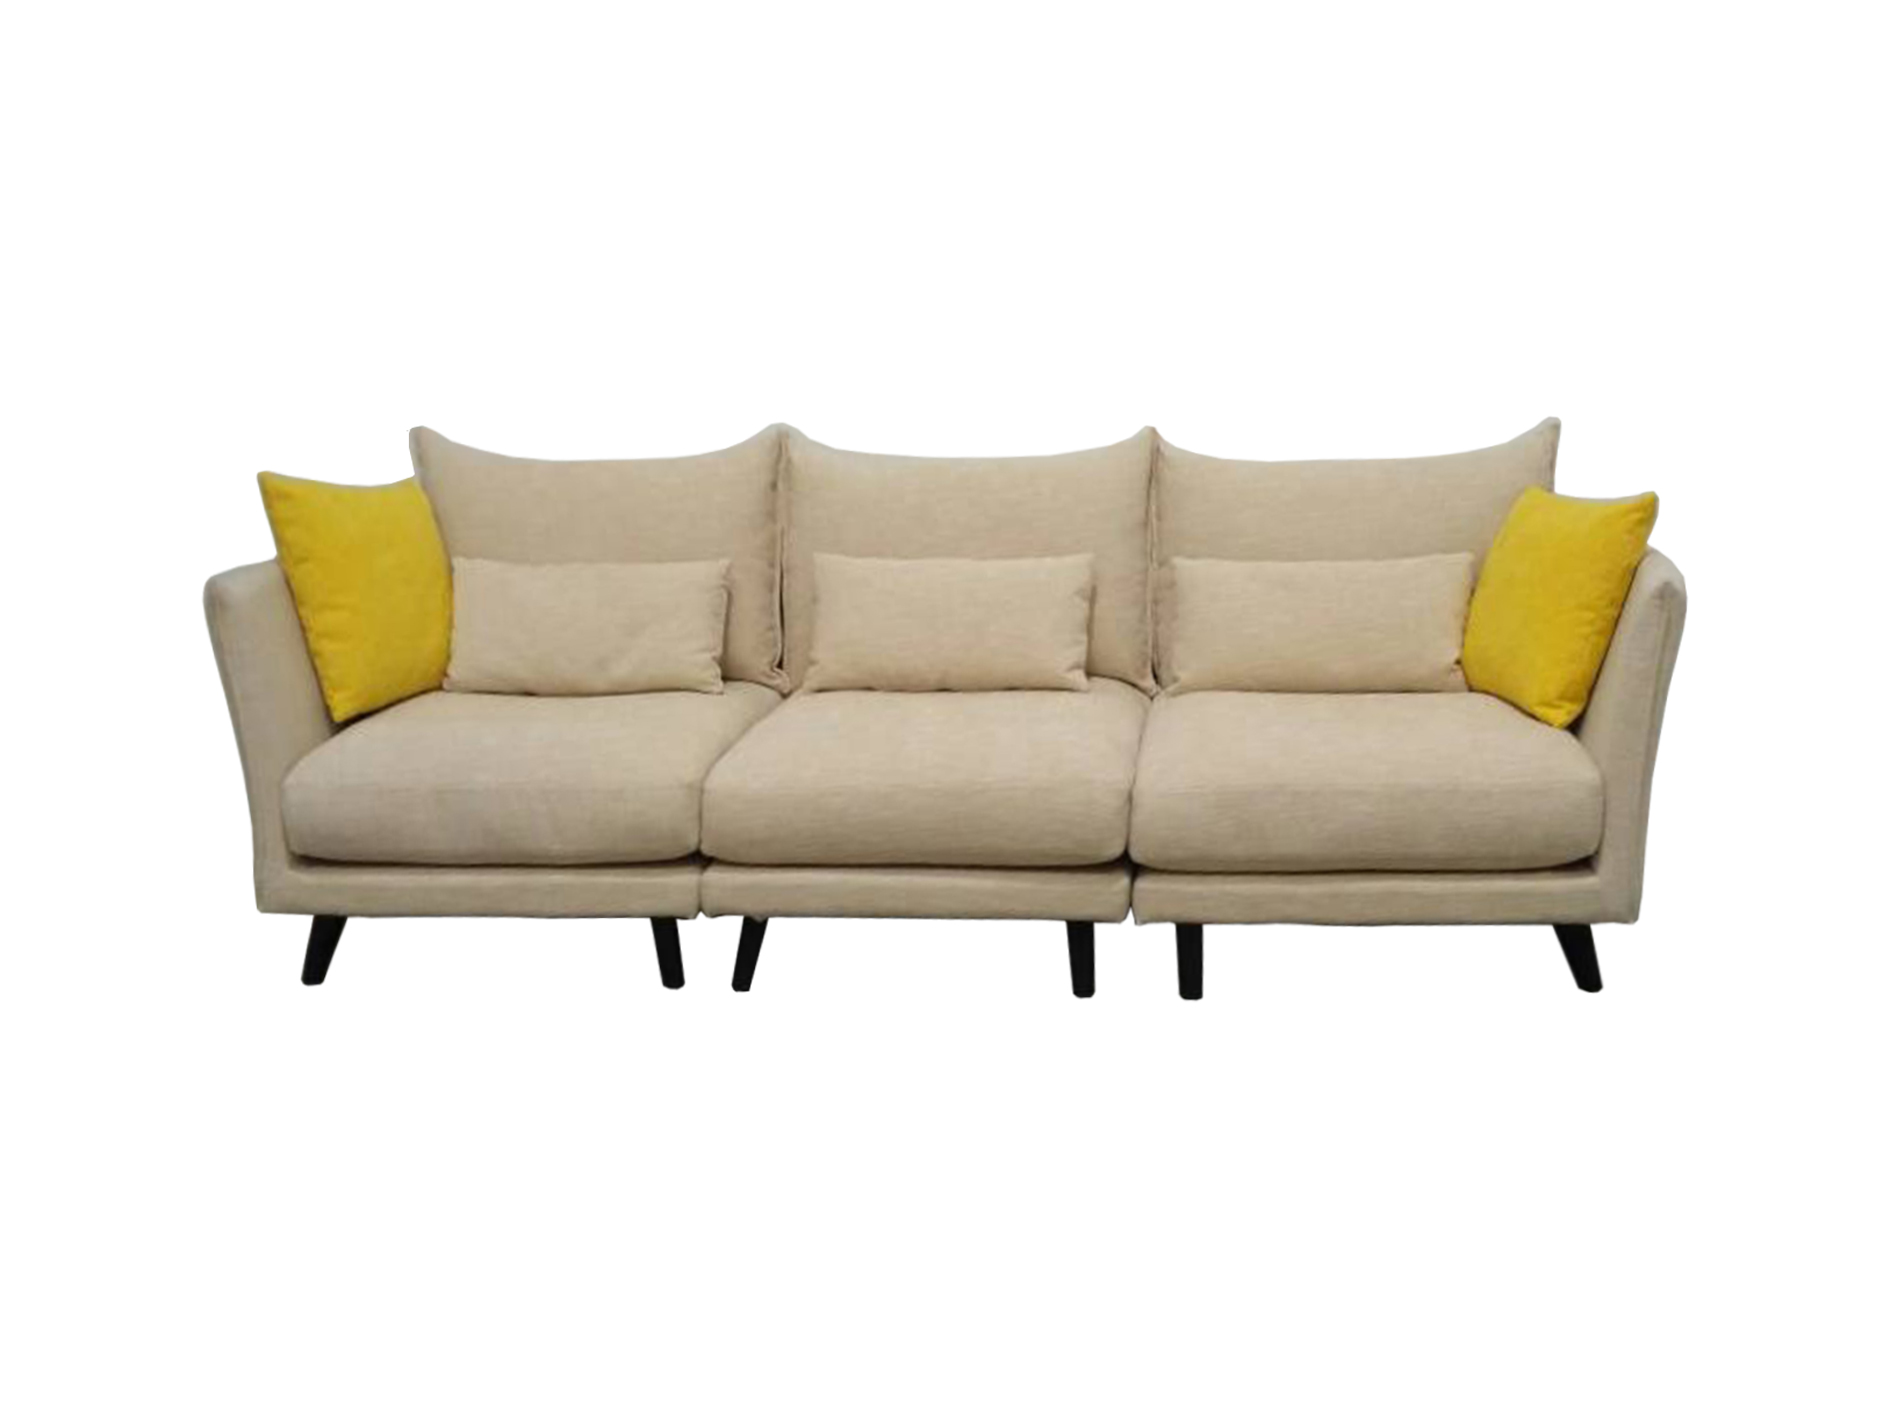 custom made fabric sofa singapore 84 gray valerio designer italian – giardino/a modular ...